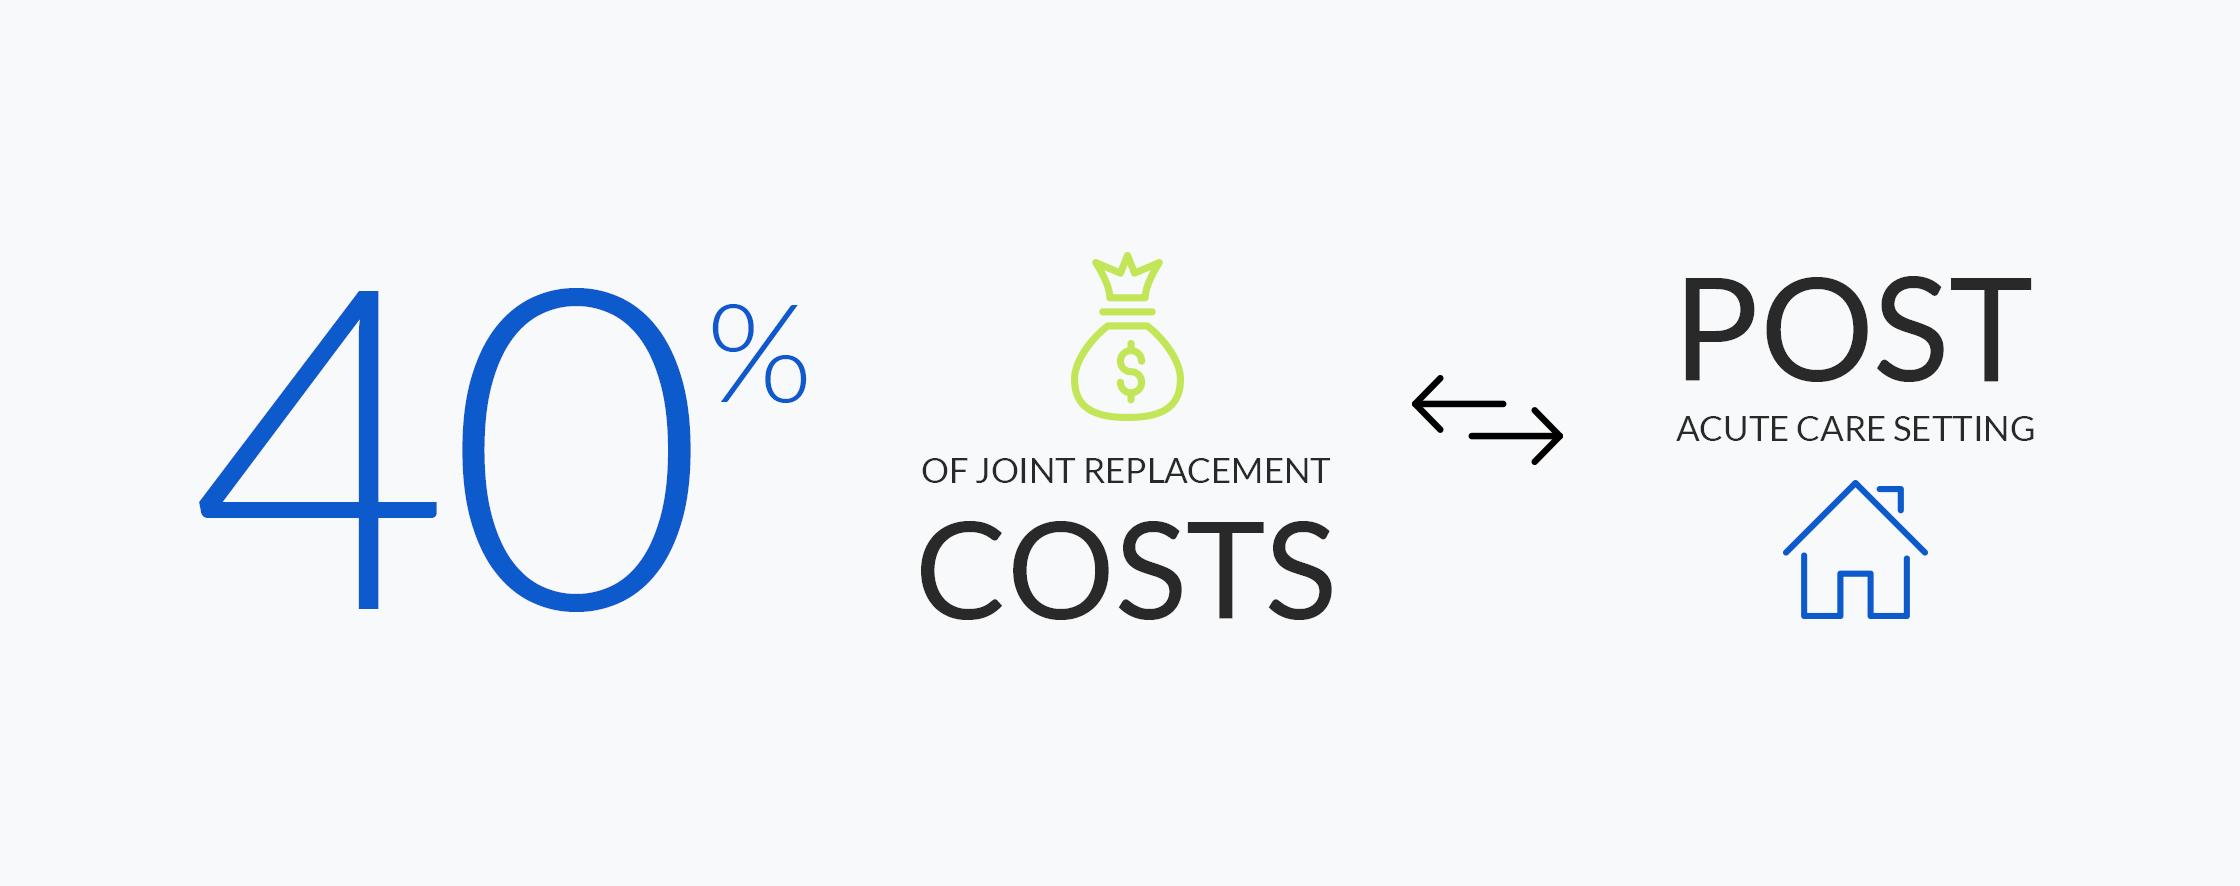 Joint Replacement Costs in the Post Acute Care Setting